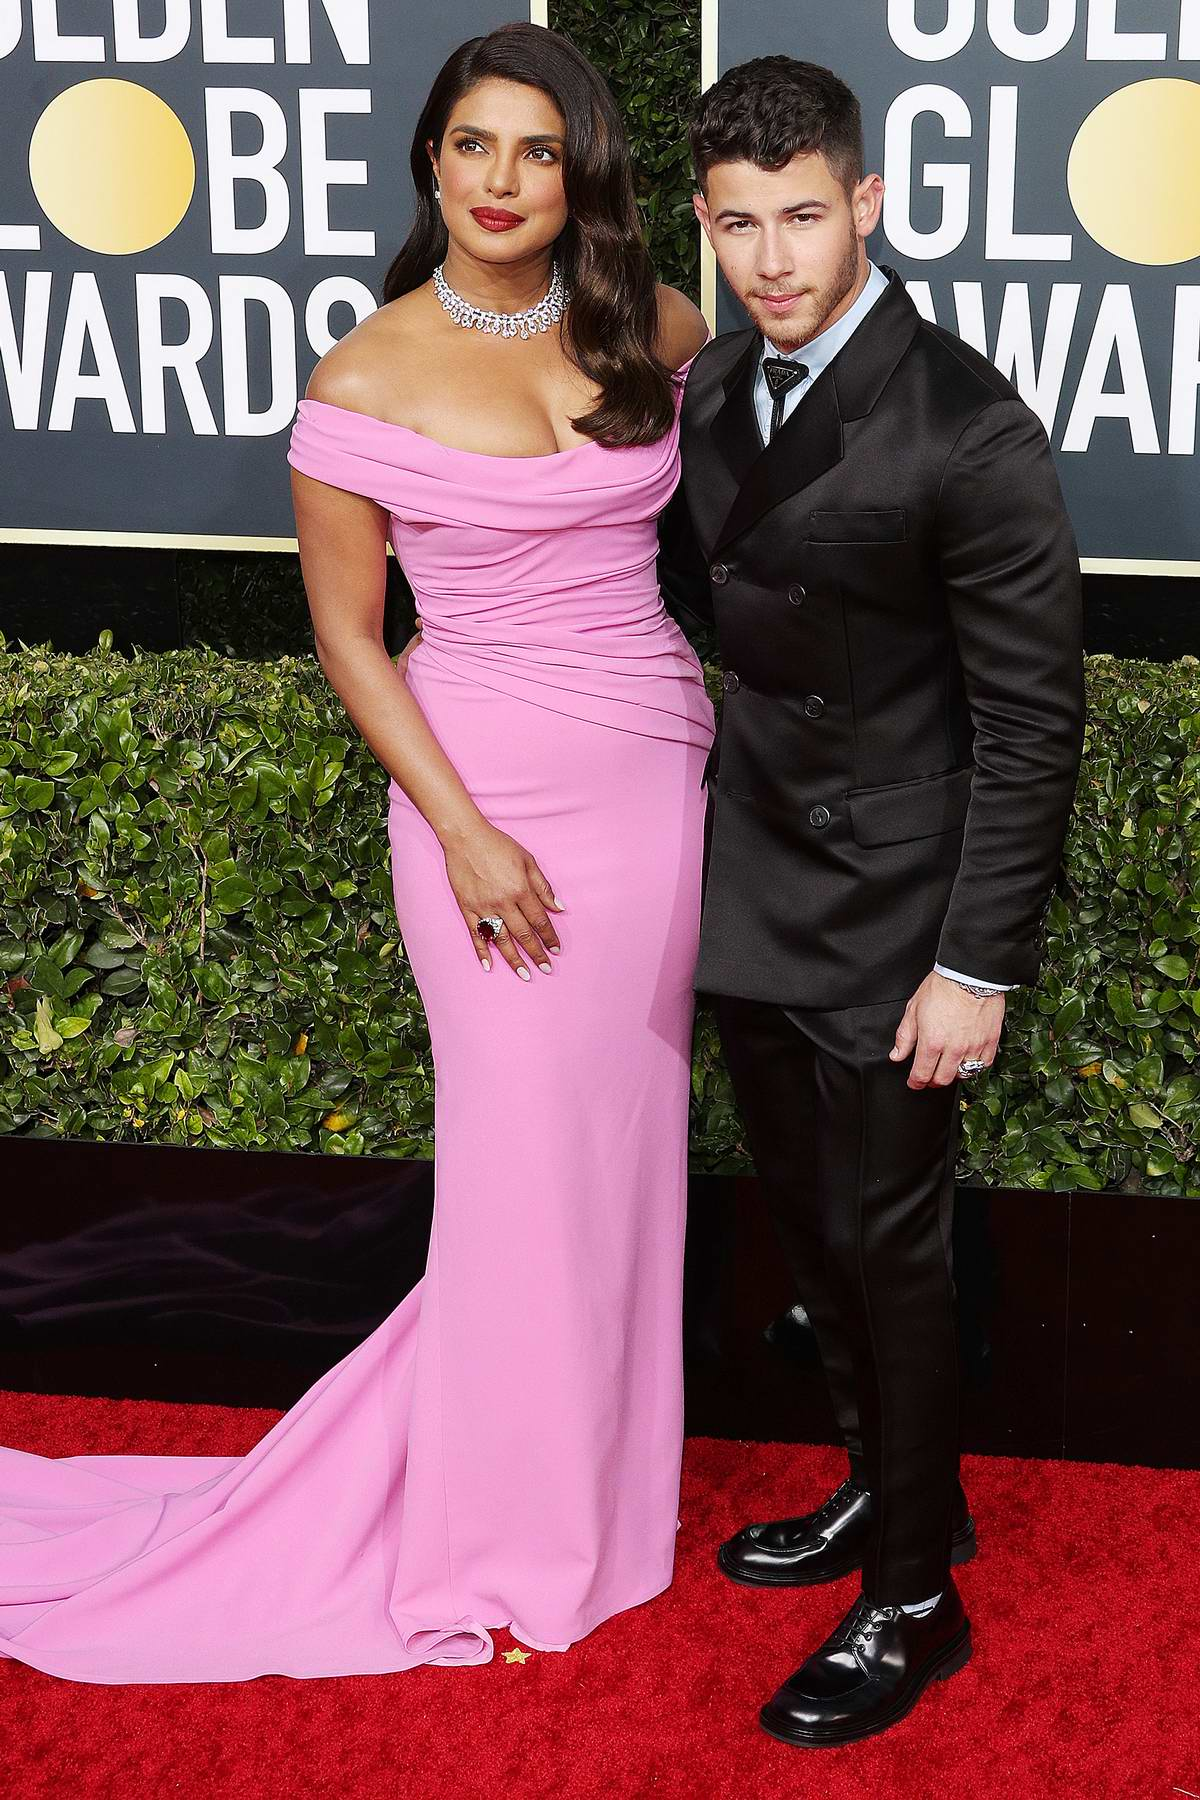 Priyanka Chopra and Nick Jonas attend the 77th Annual Golden Globe Awards at The Beverly Hilton Hotel in Beverly Hills, California